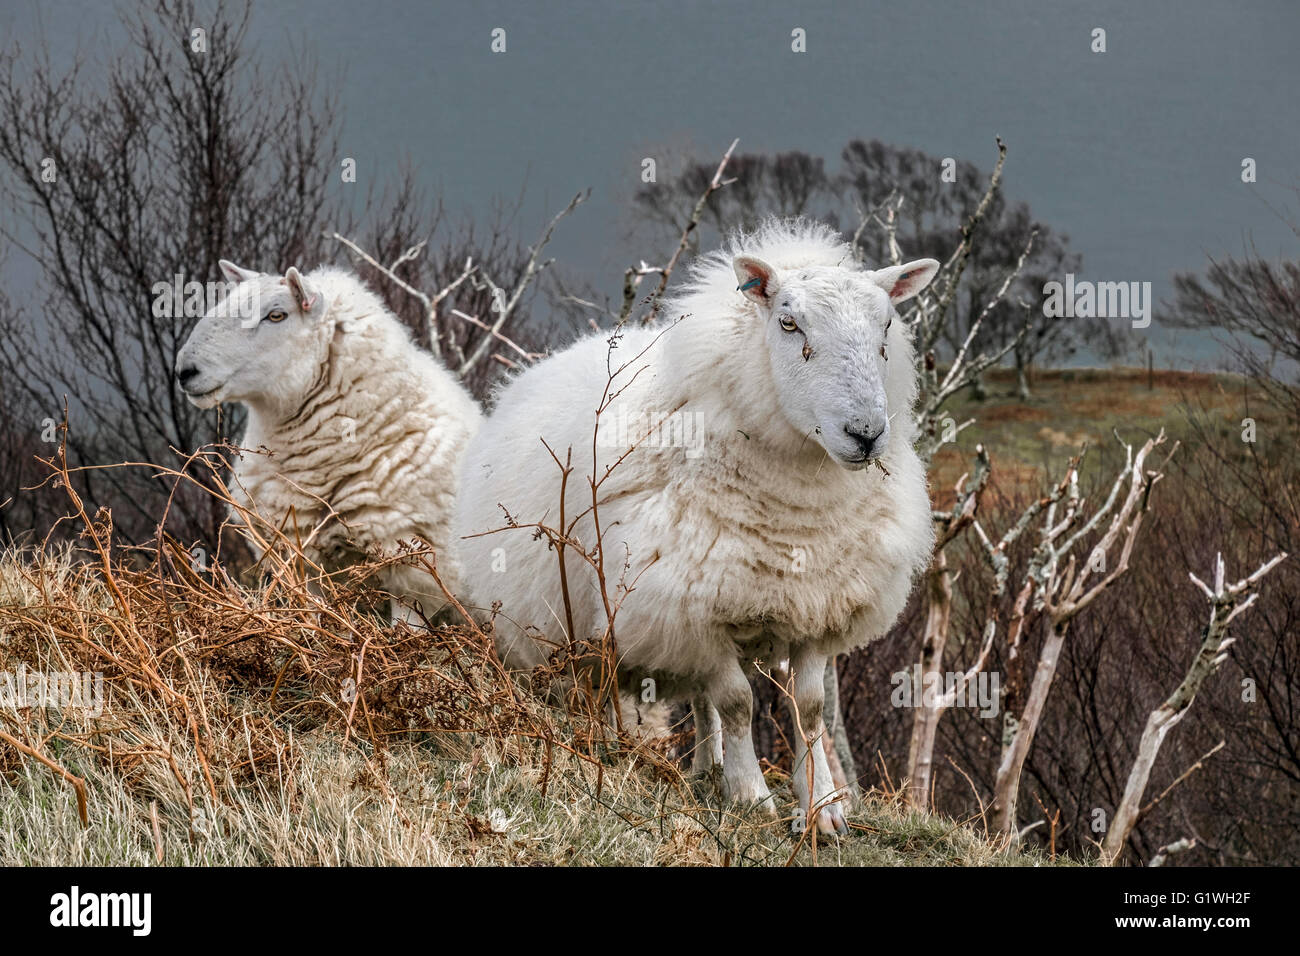 two cheviot ewes in winter setting isle of skye - Stock Image